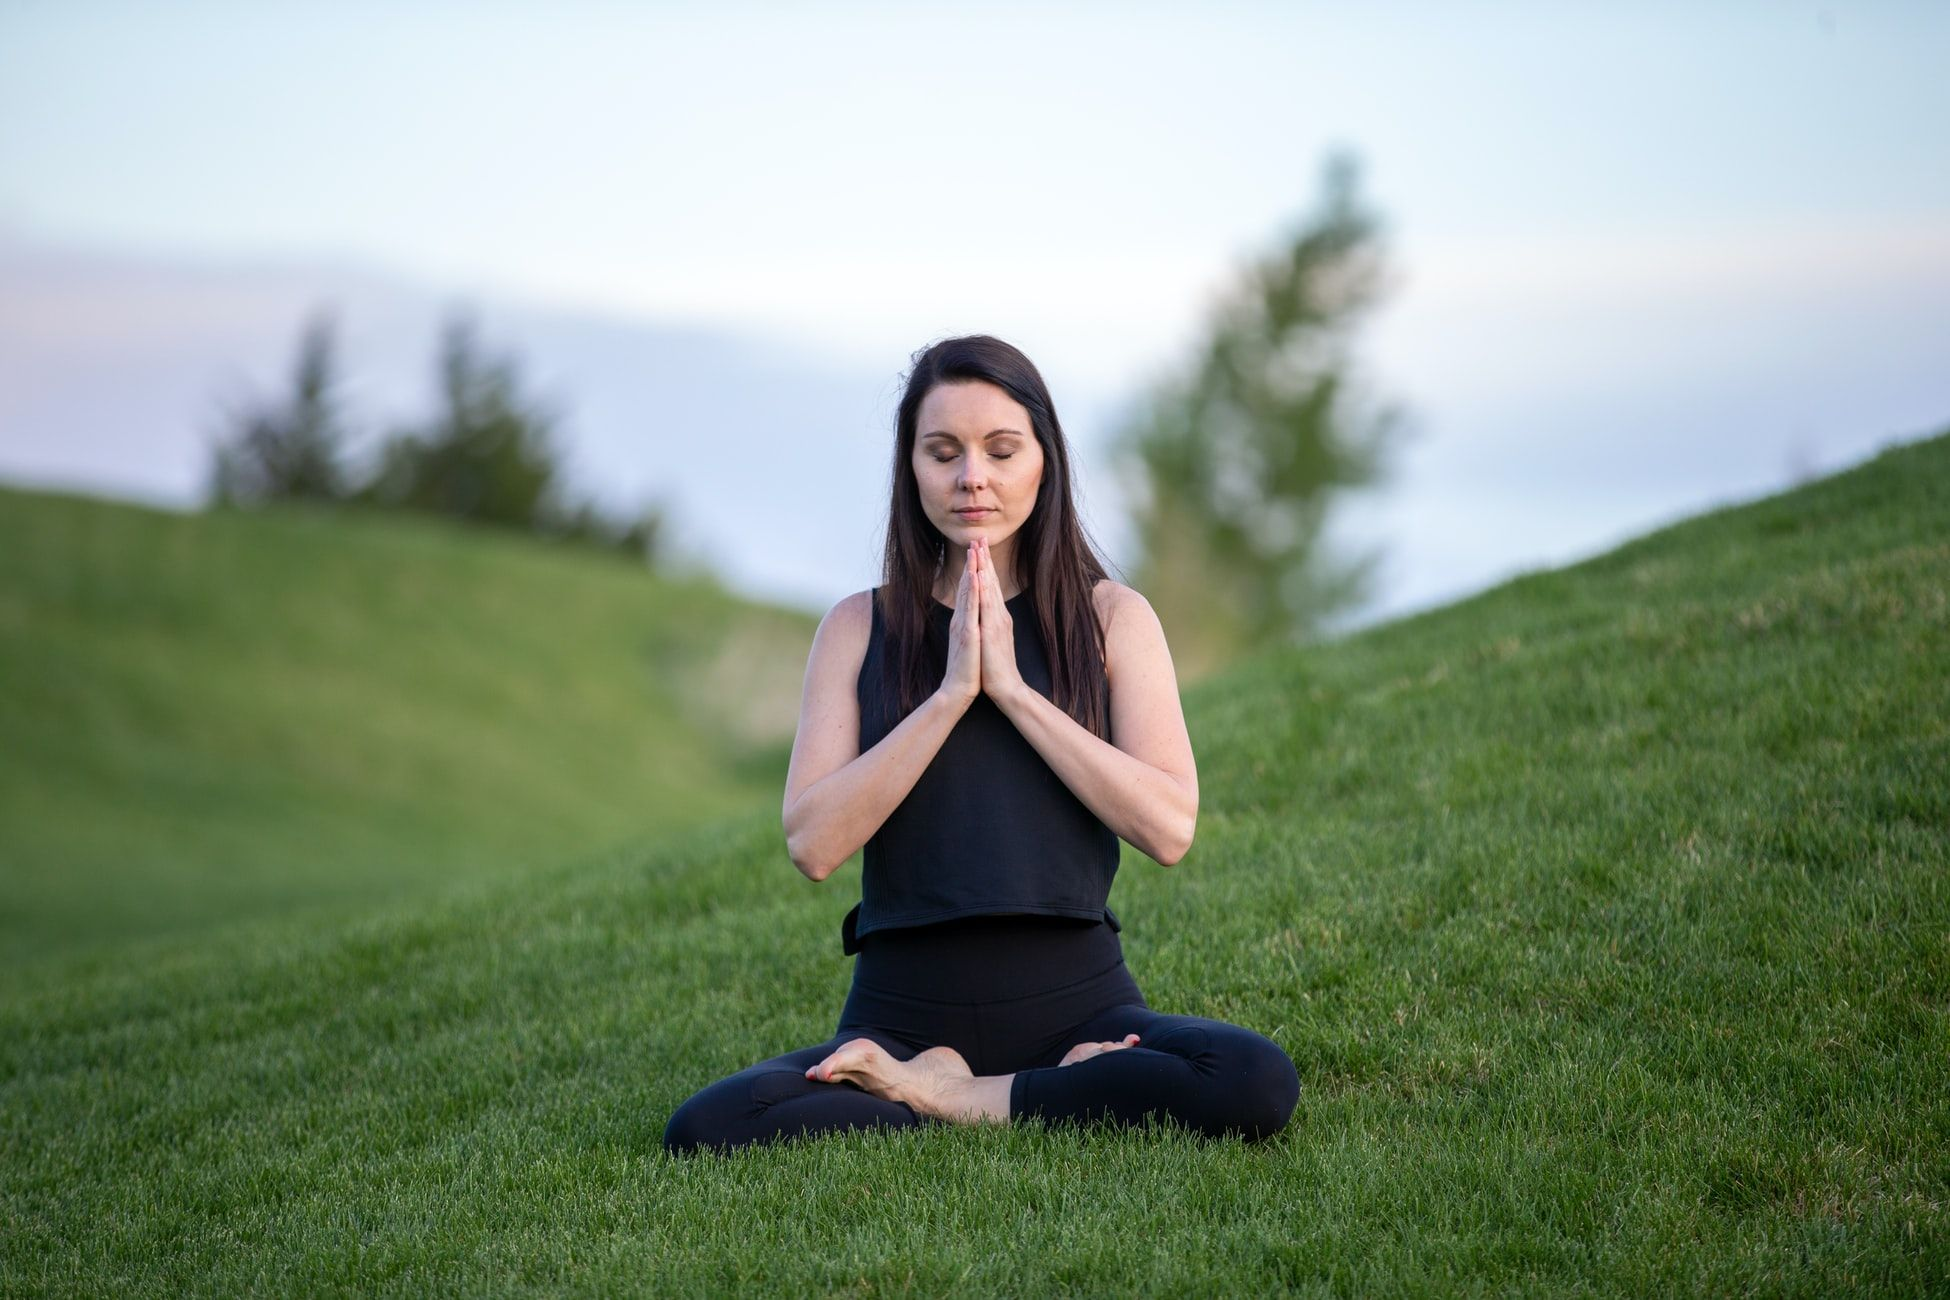 Wellness 2021: 'Calmtainment' Is The New Trend For Relaxing Programming